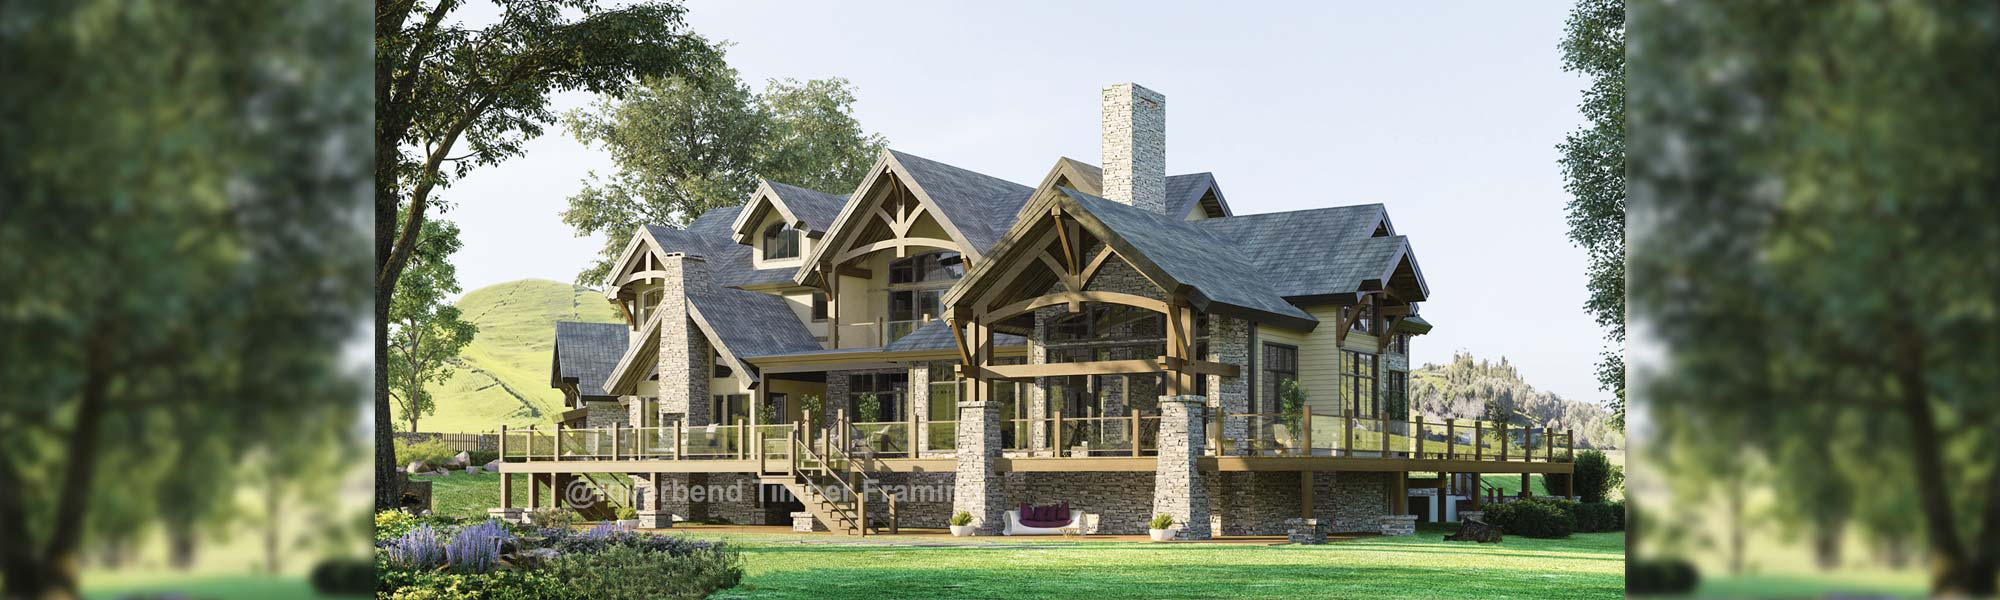 Summerhill Timber Frame Home